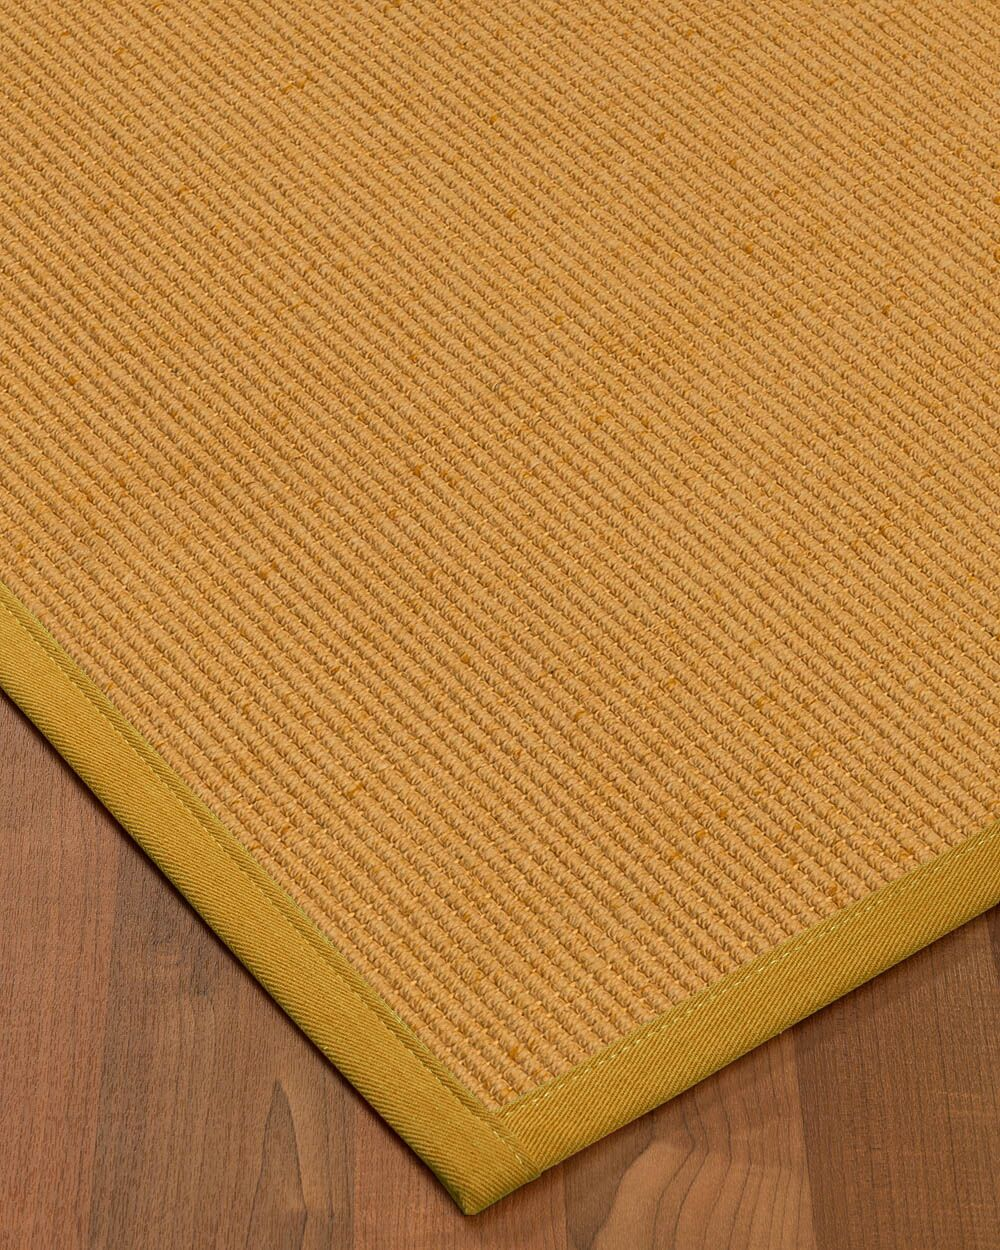 Vannatter Border Hand-Woven Beige/Green Area Rug Rug Size: Rectangle 4' x 6', Rug Pad Included: Yes